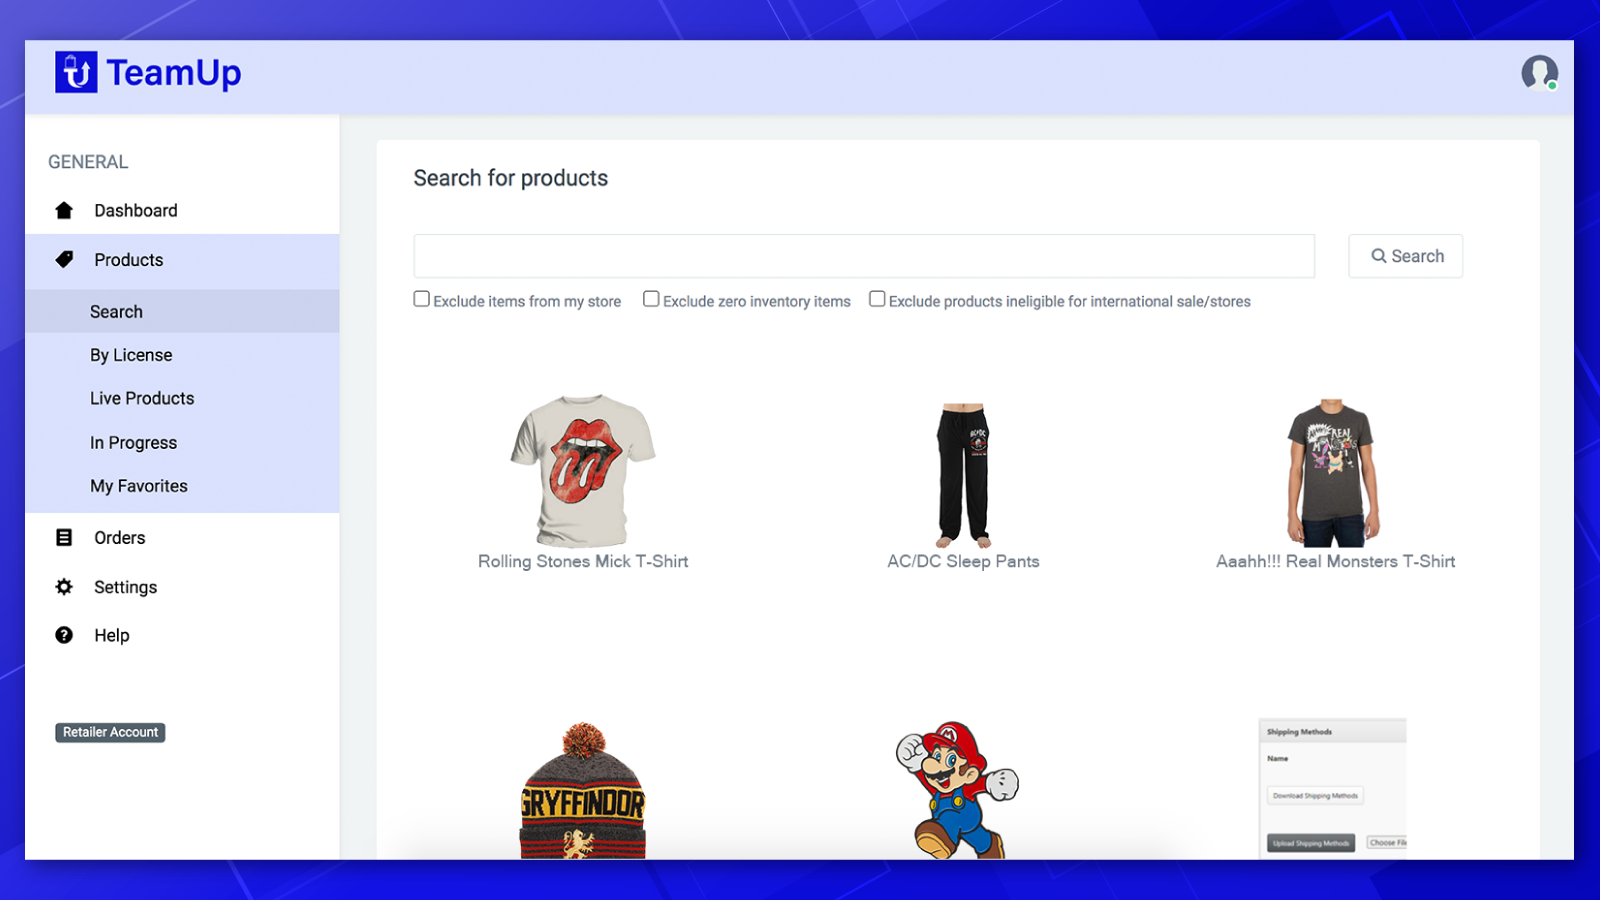 Search through thousands of products to stock your store.